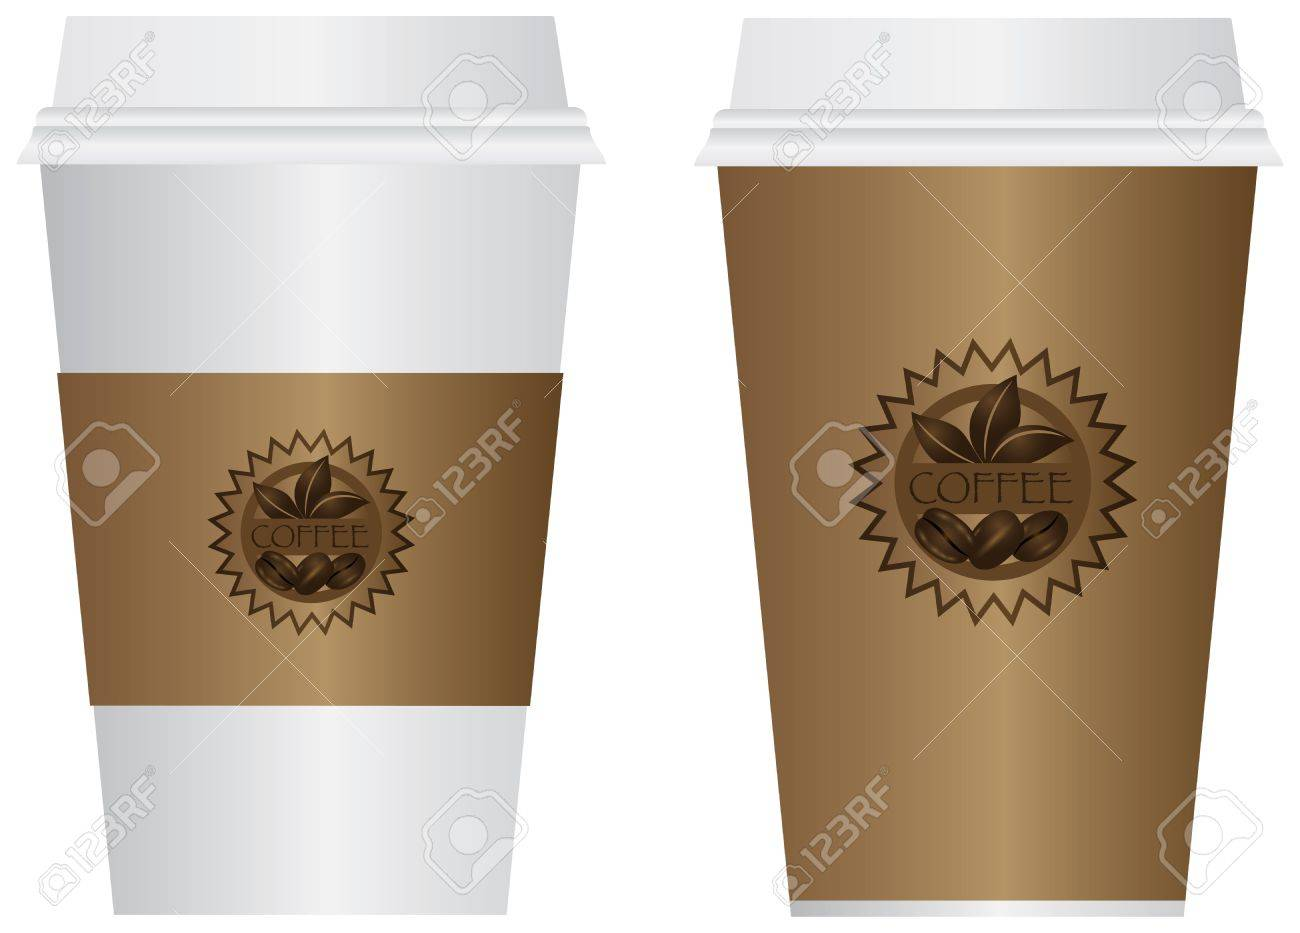 Hot Coffee Disposable To Go Cups with Sleeve Lids and Label Isolated on White Background Illustration Stock Vector - 17114843